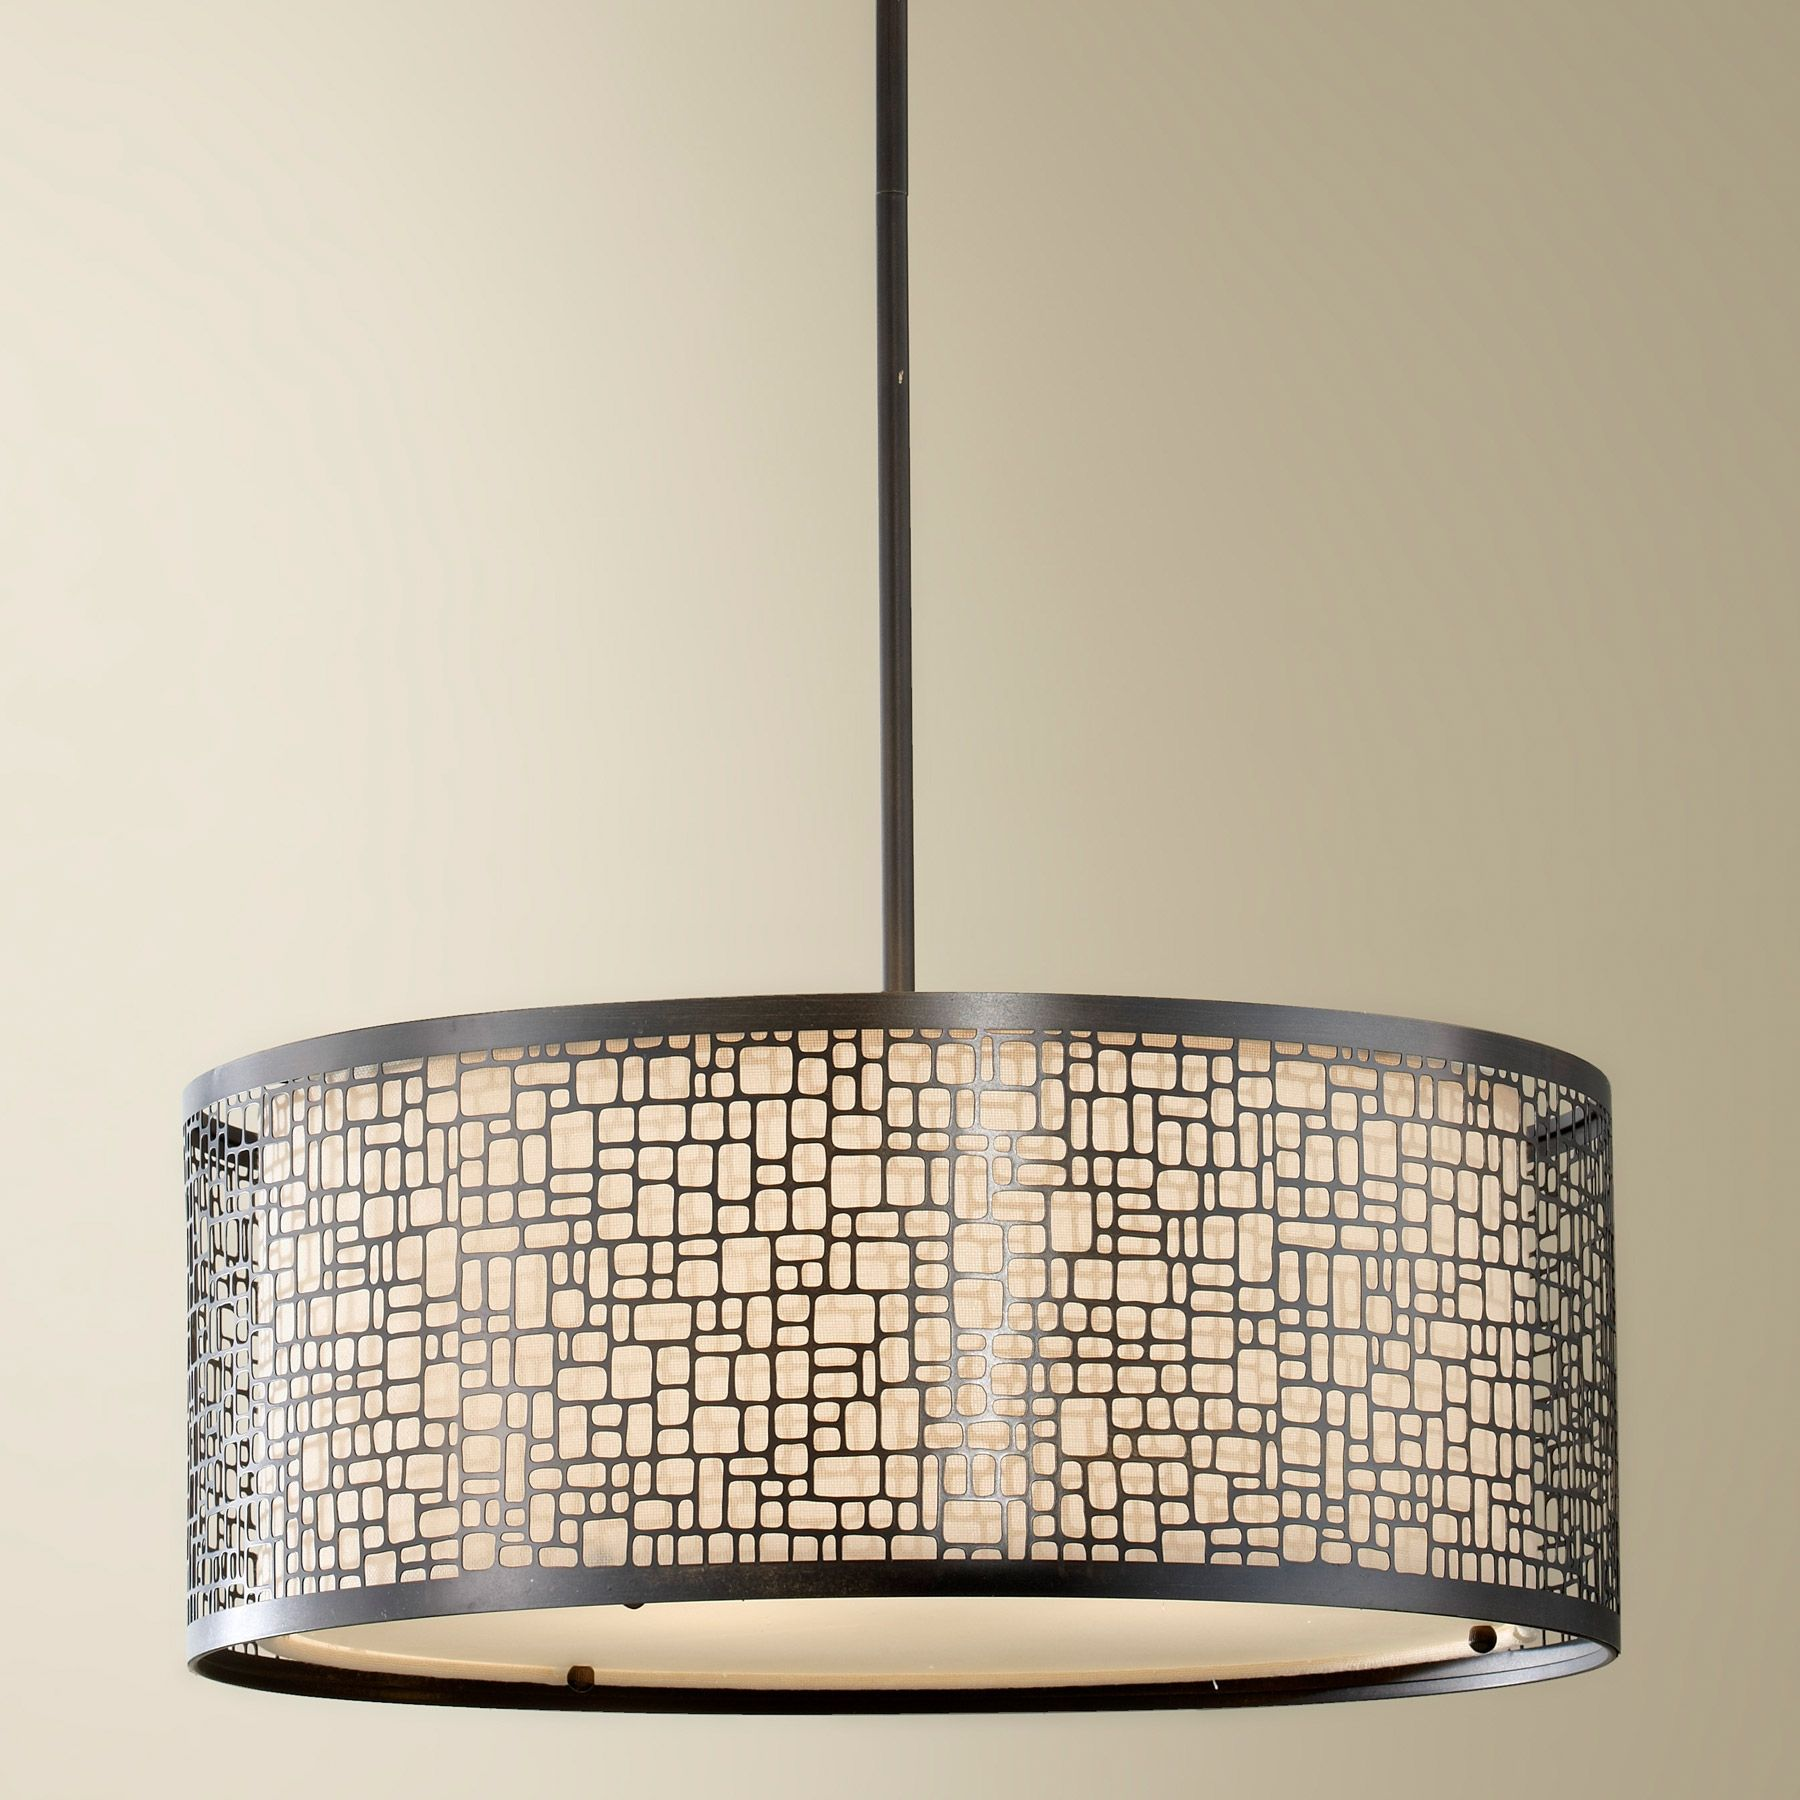 Murray Feiss Pendant Light Fixtures